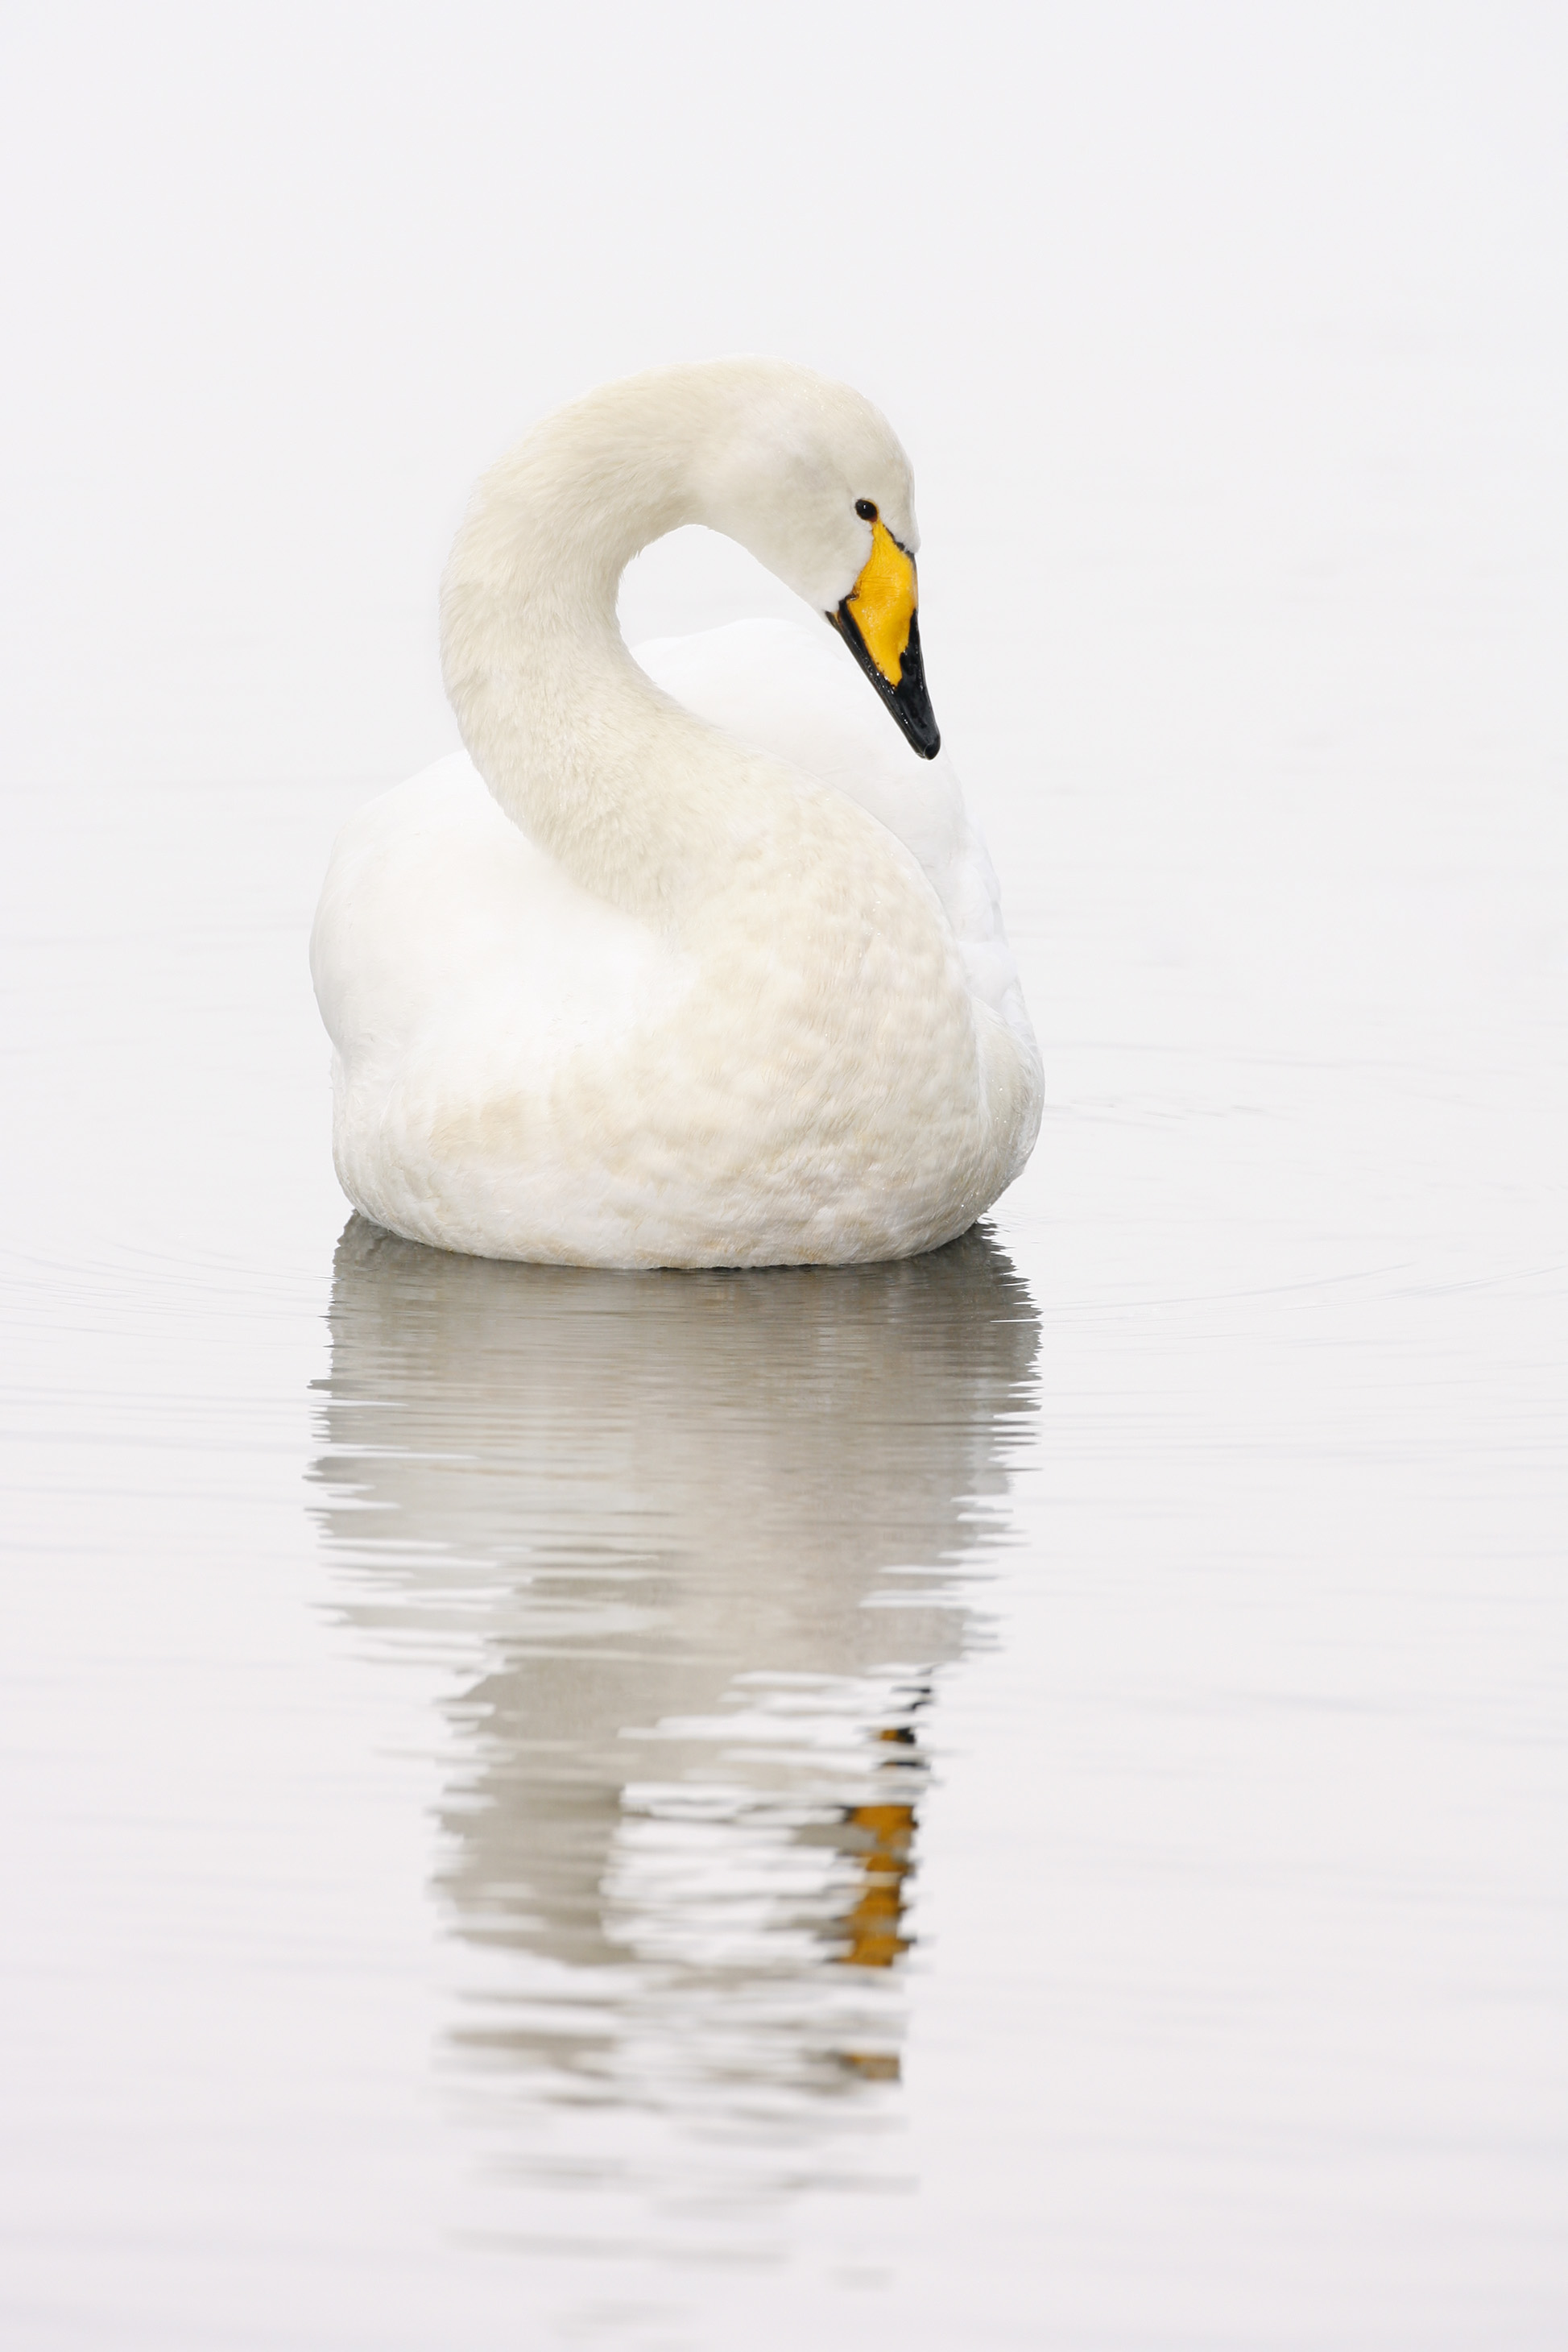 Whooper Swan, The Mere, Swanlink Hide, WWT Martin Mere, Burscough, Lancashire Category: WWT Nikon Photo of the Year